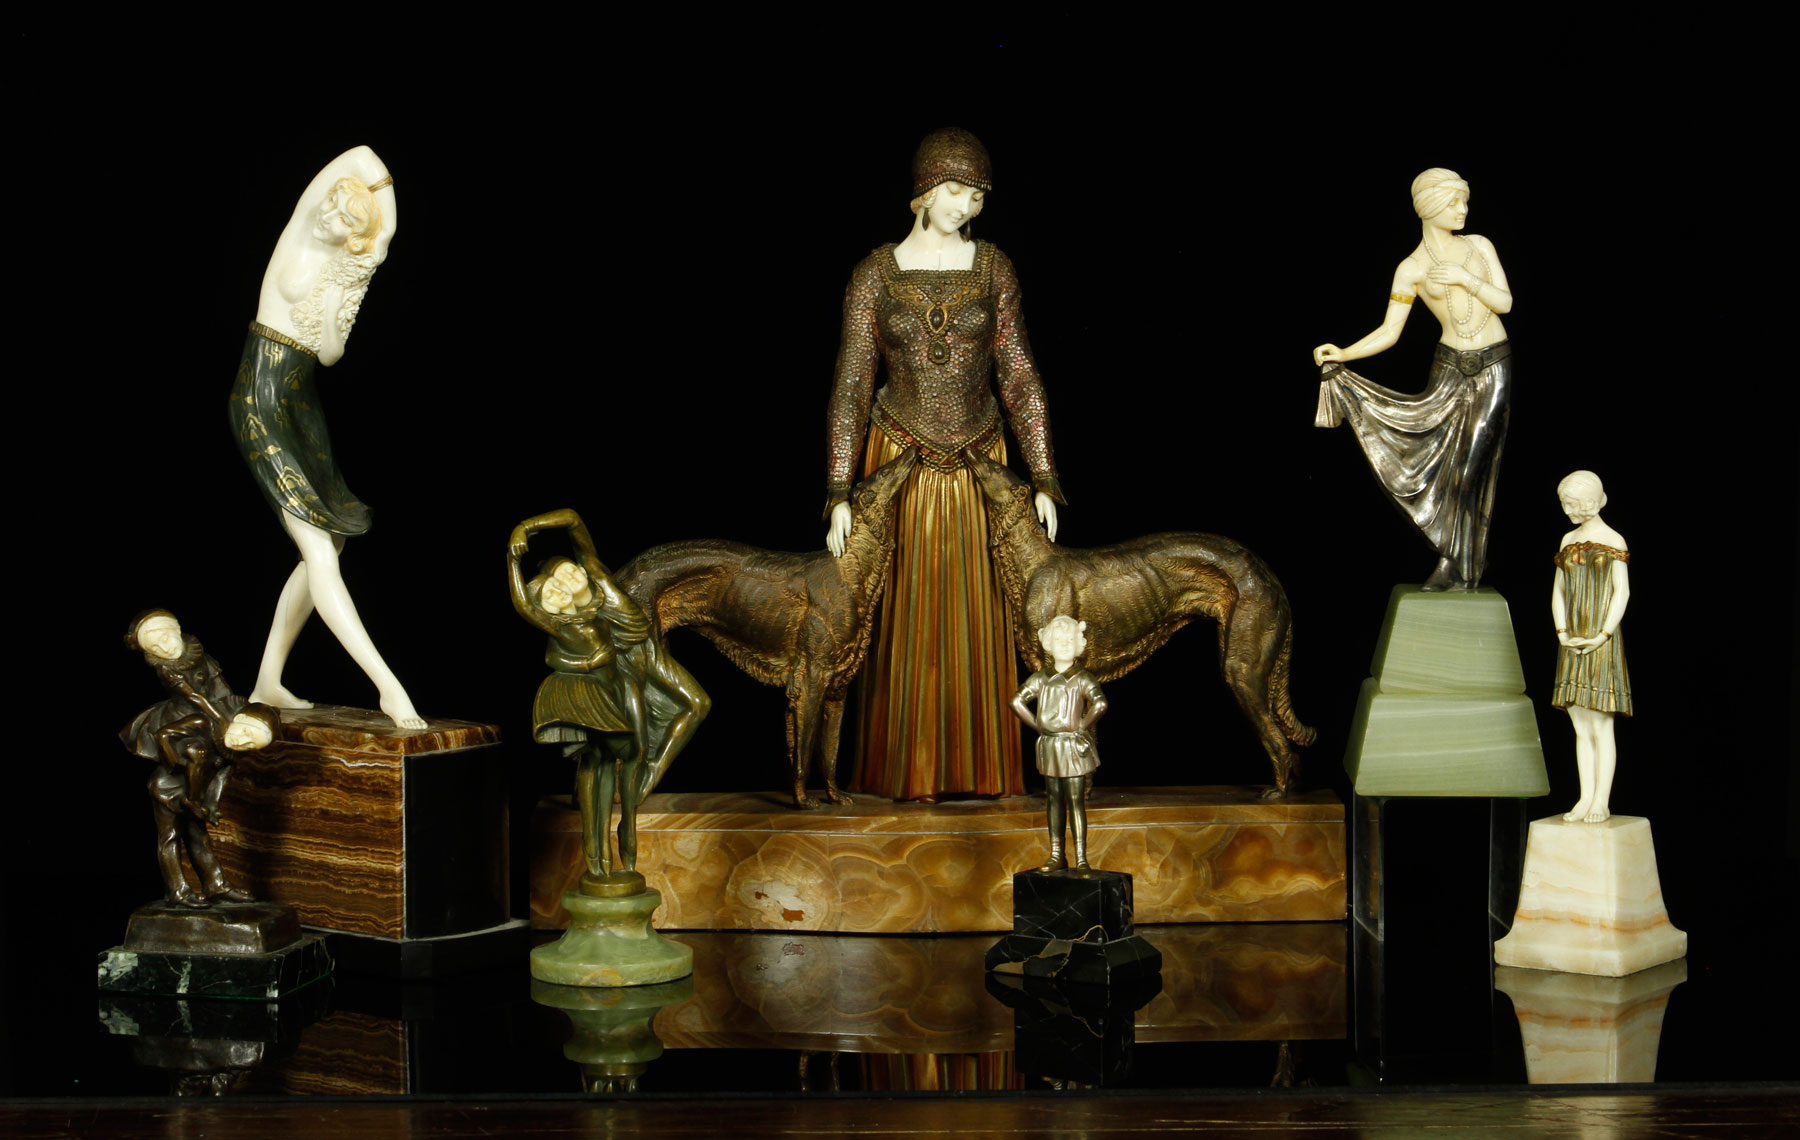 Kaminski Auctions' estates auction June 7 will feature a collection of Art Deco figures including pieces by Chiparus. Kaminski Auctions images